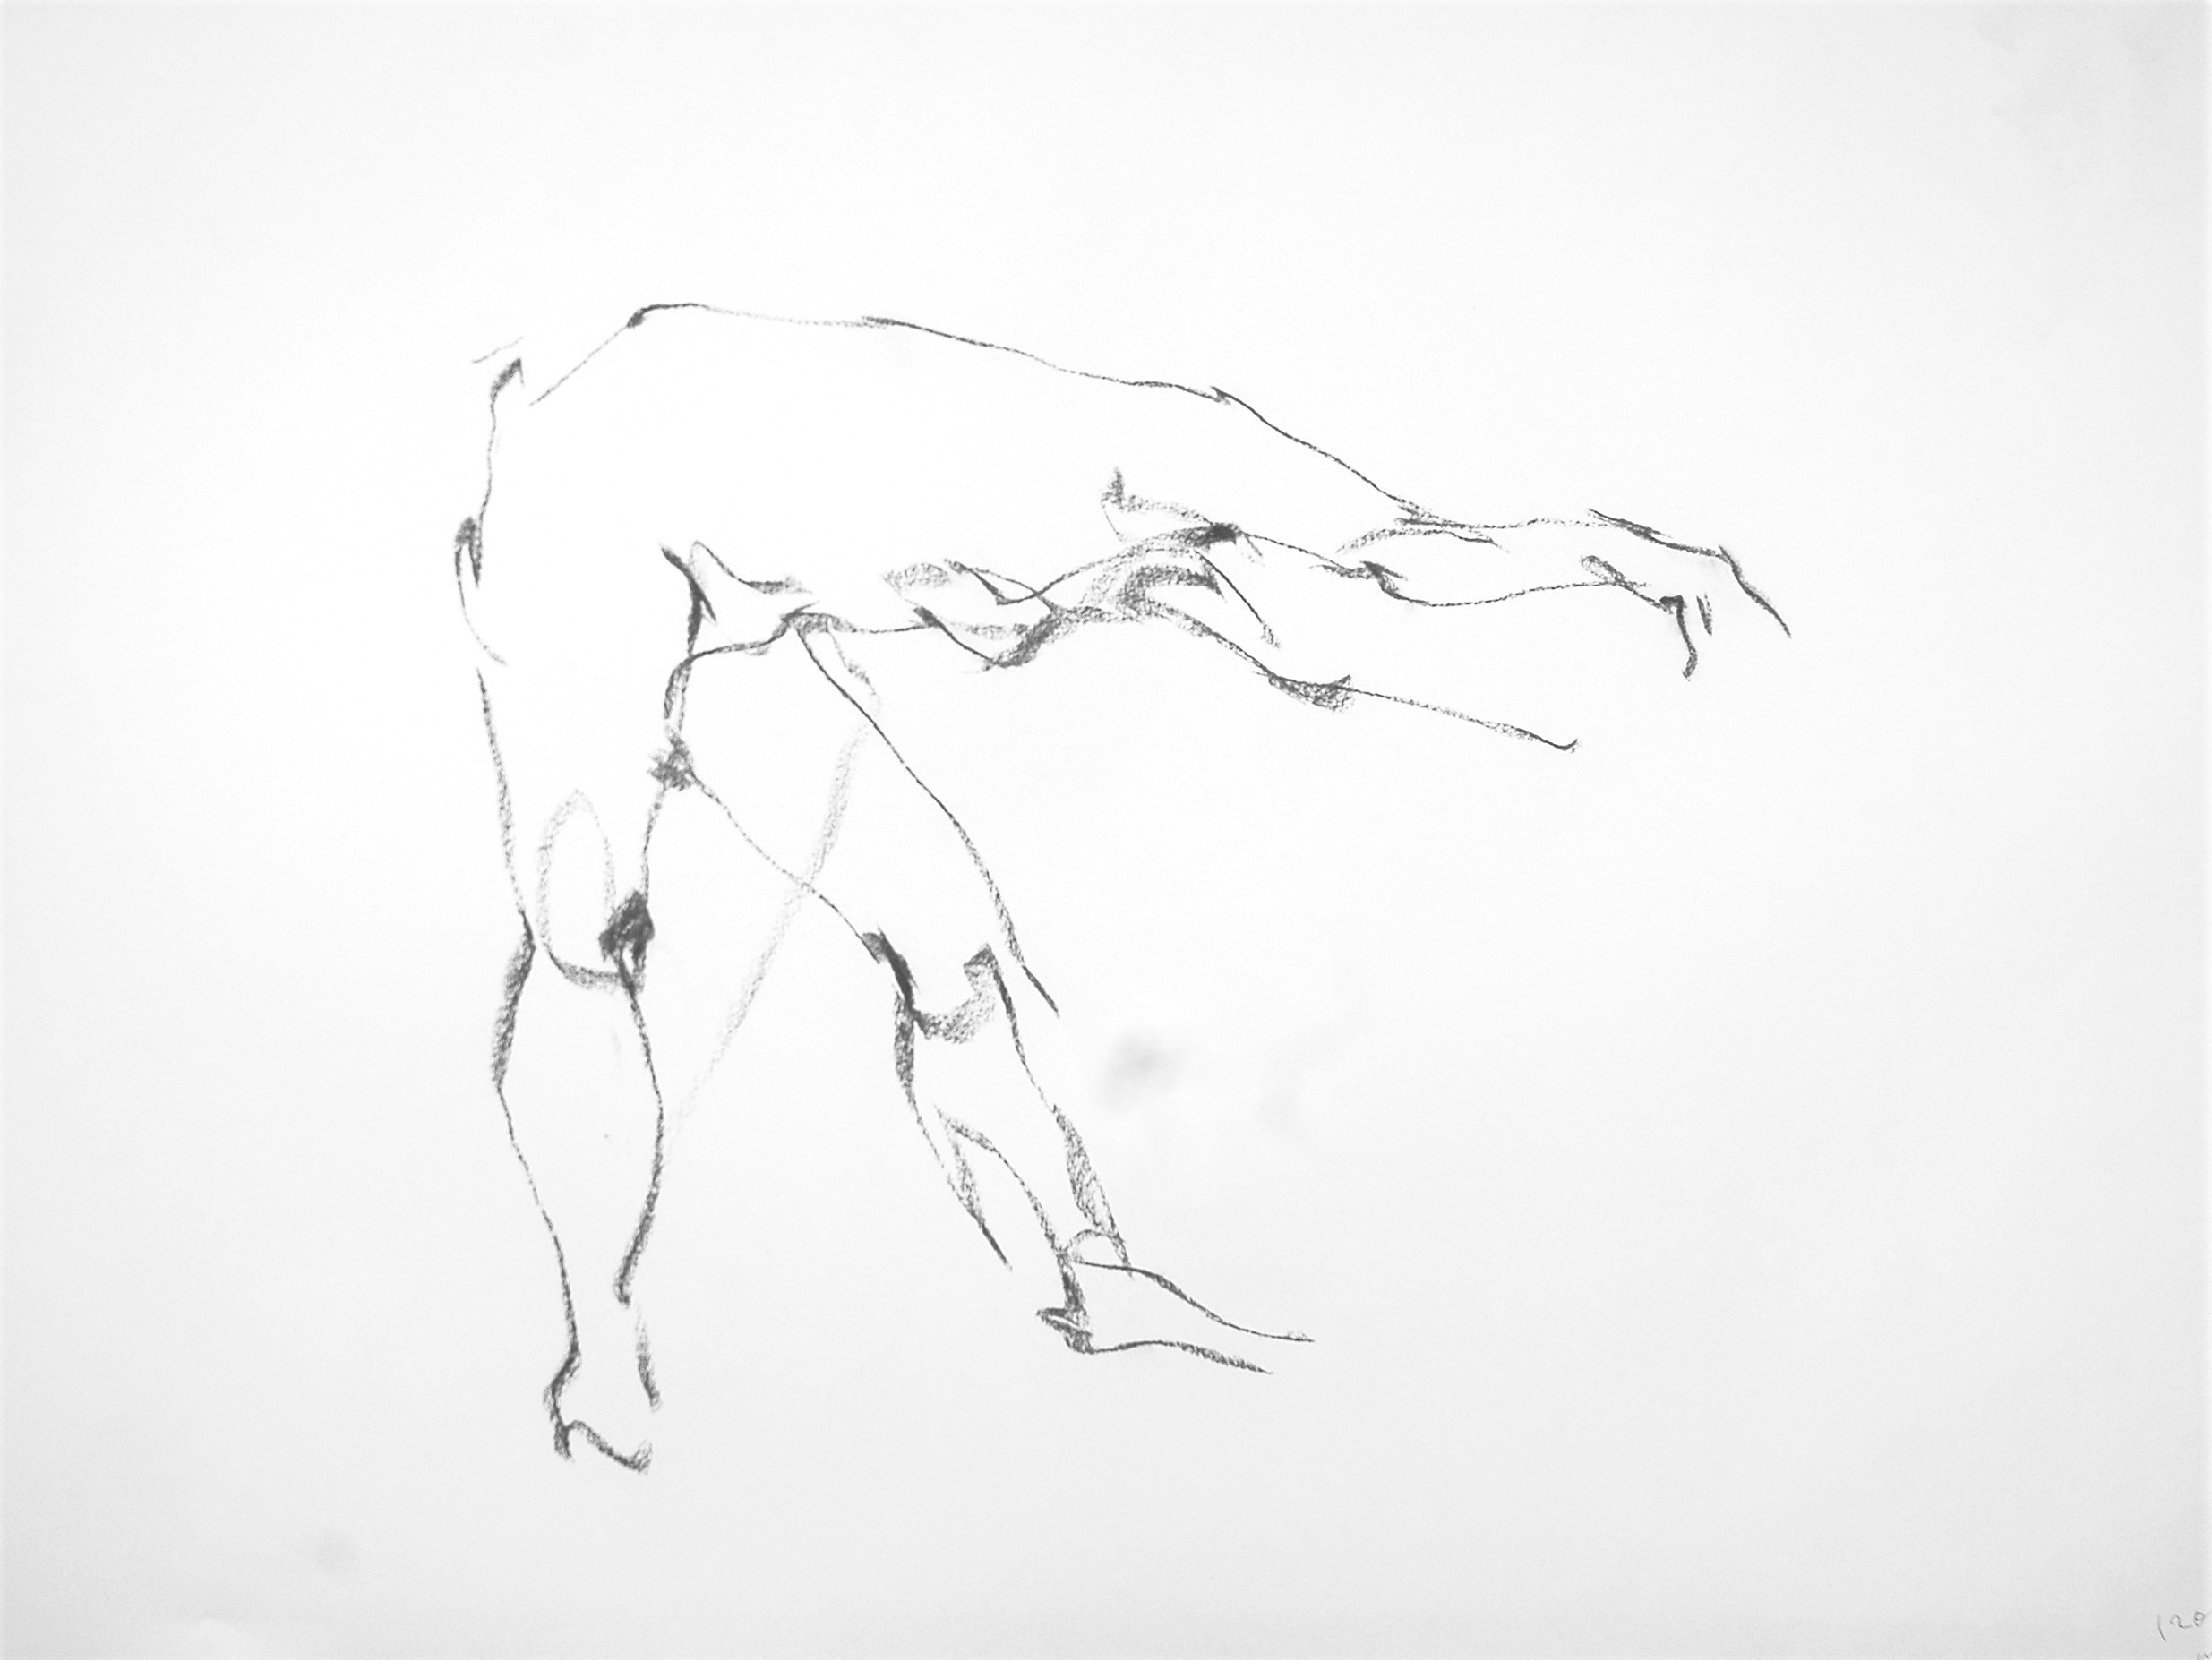 《 (Moveing) ―― 連続する90 second croquis  2 》 _f0159856_22032184.jpg